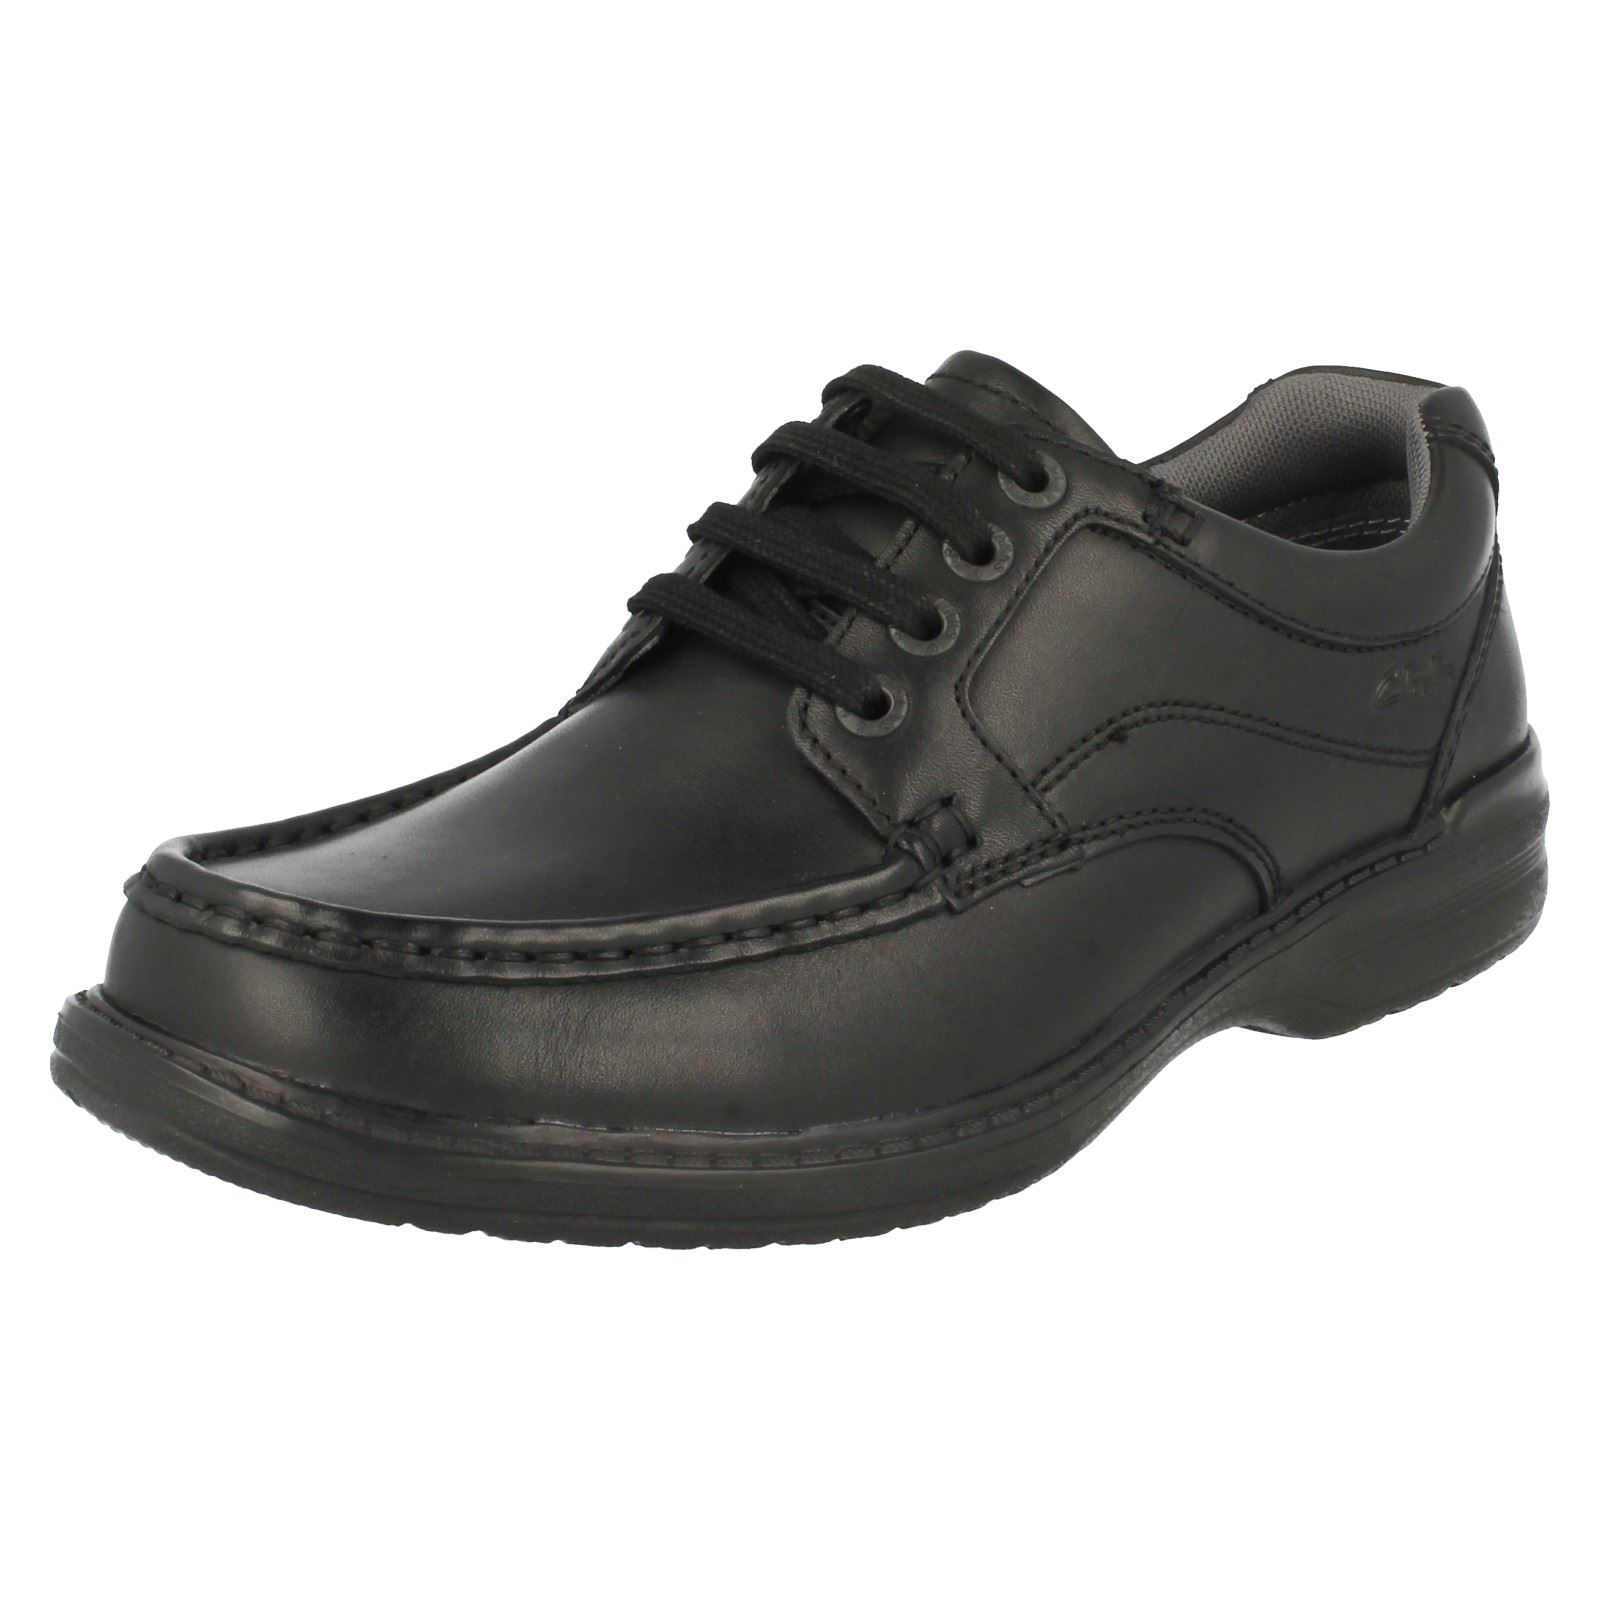 Mens Clarks Casual Shoes *Keeler Walk*